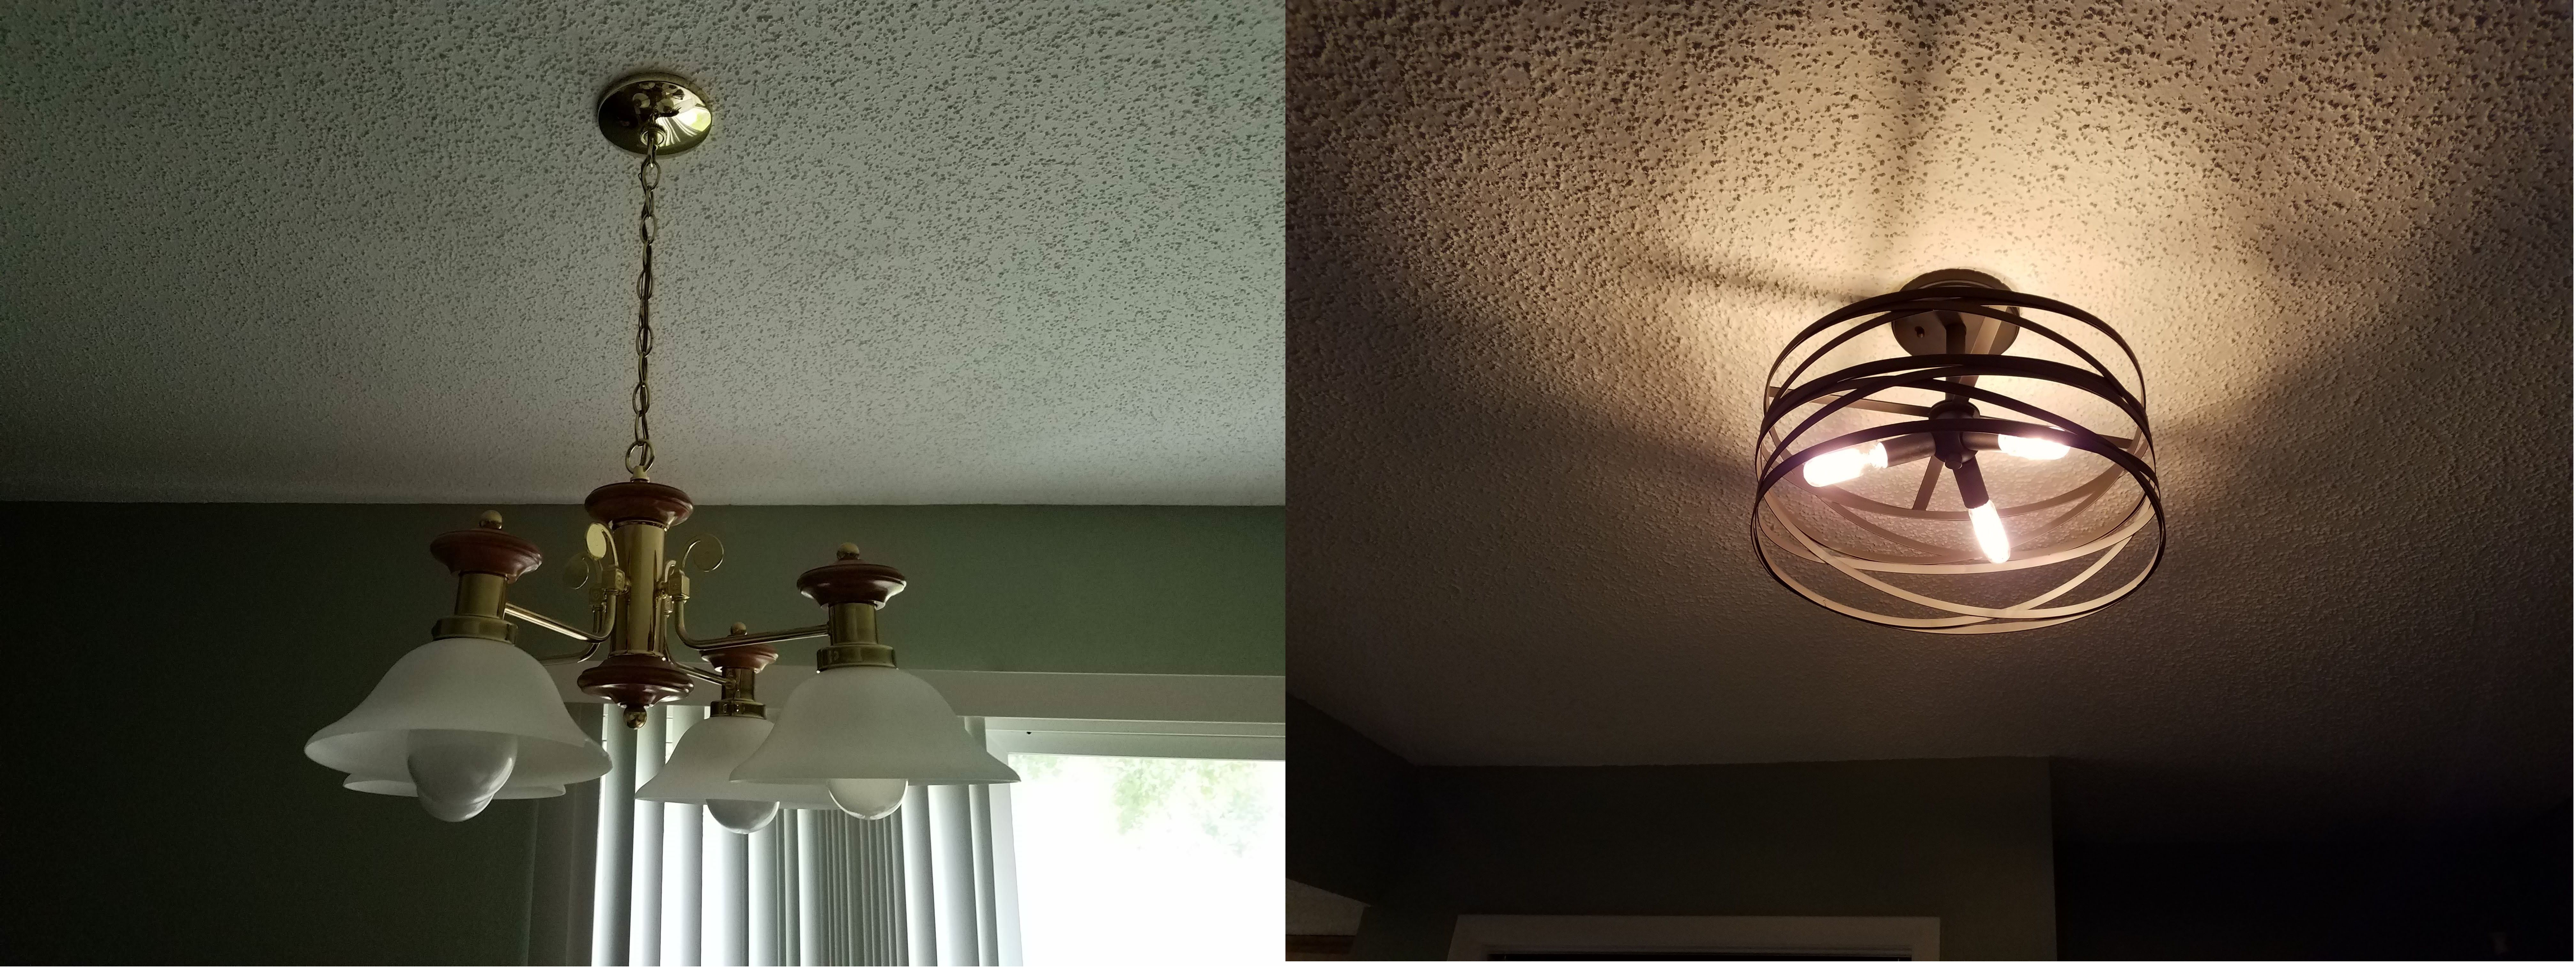 Before and after replaced dining area light. Ceiling